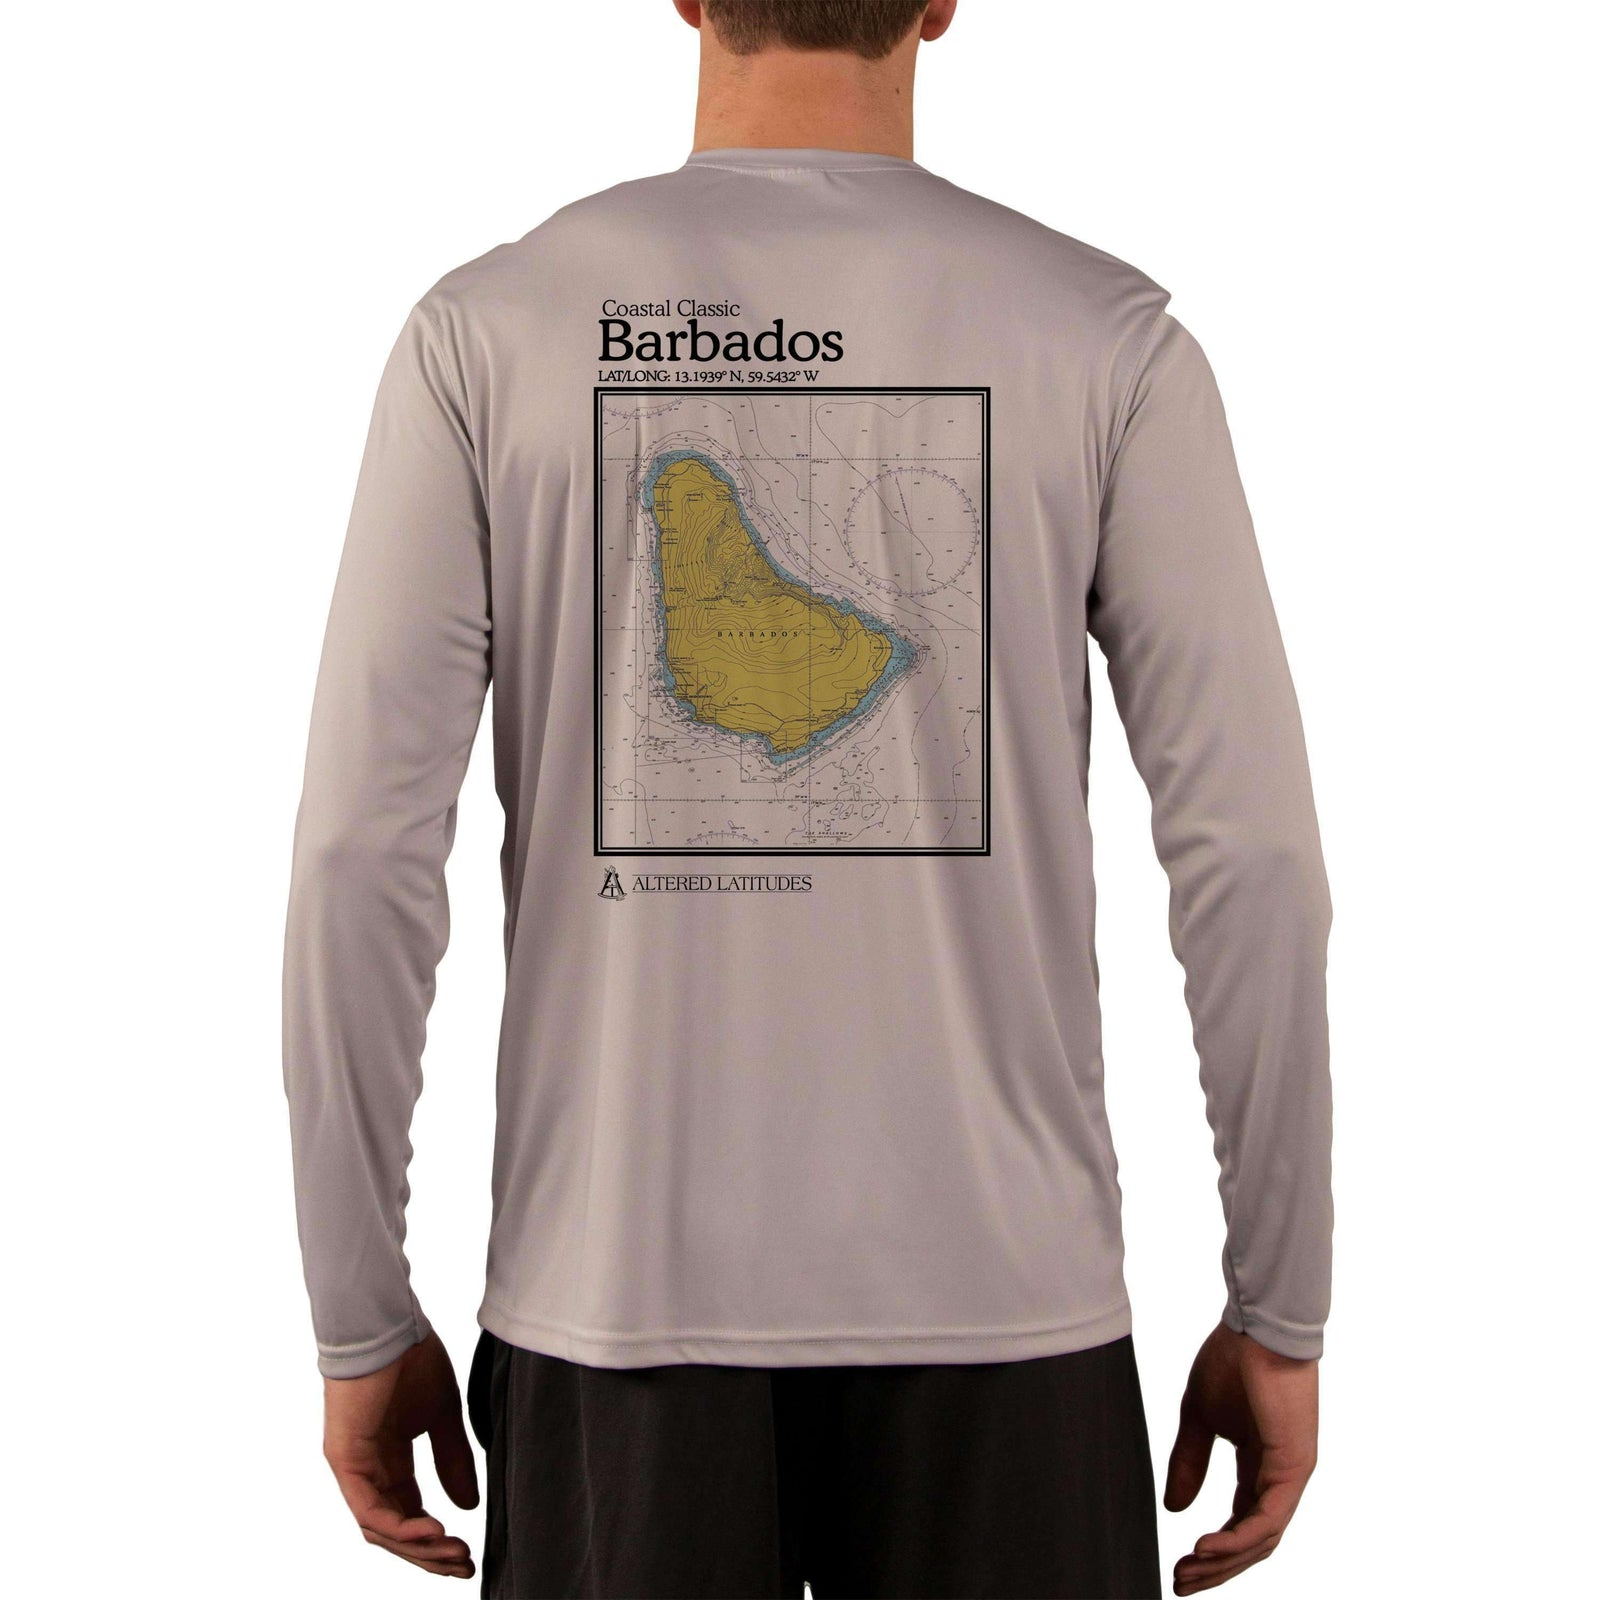 Coastal Classics Barbados Men's UPF 50+ Long Sleeve T-Shirt